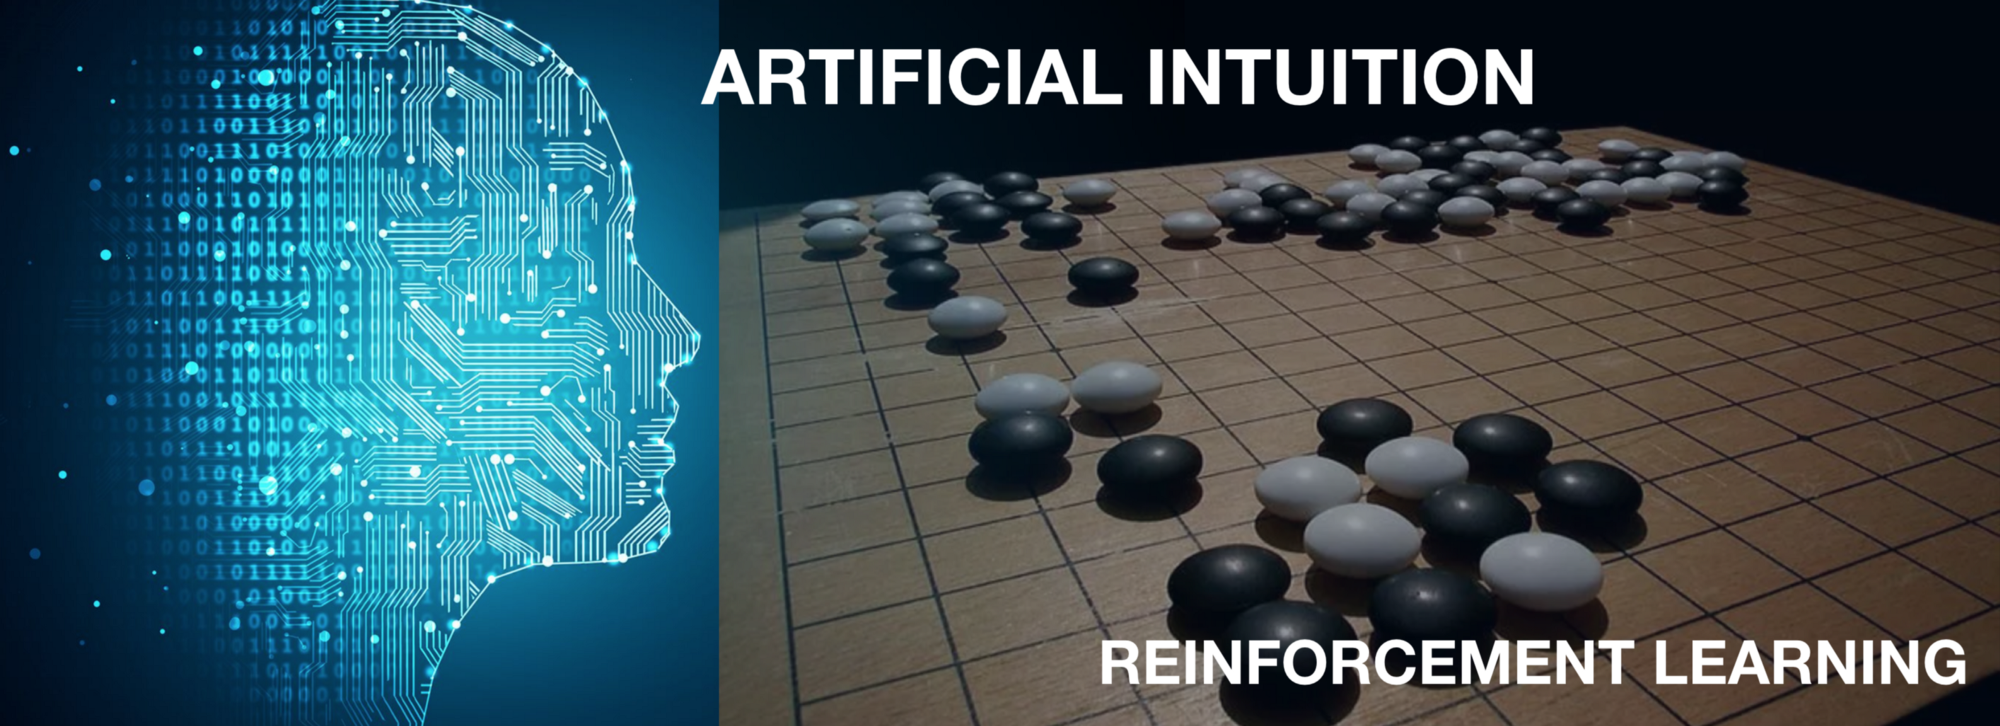 Artificial Intuition and Reinforcement Learning, The Next Steps In Machine Learning